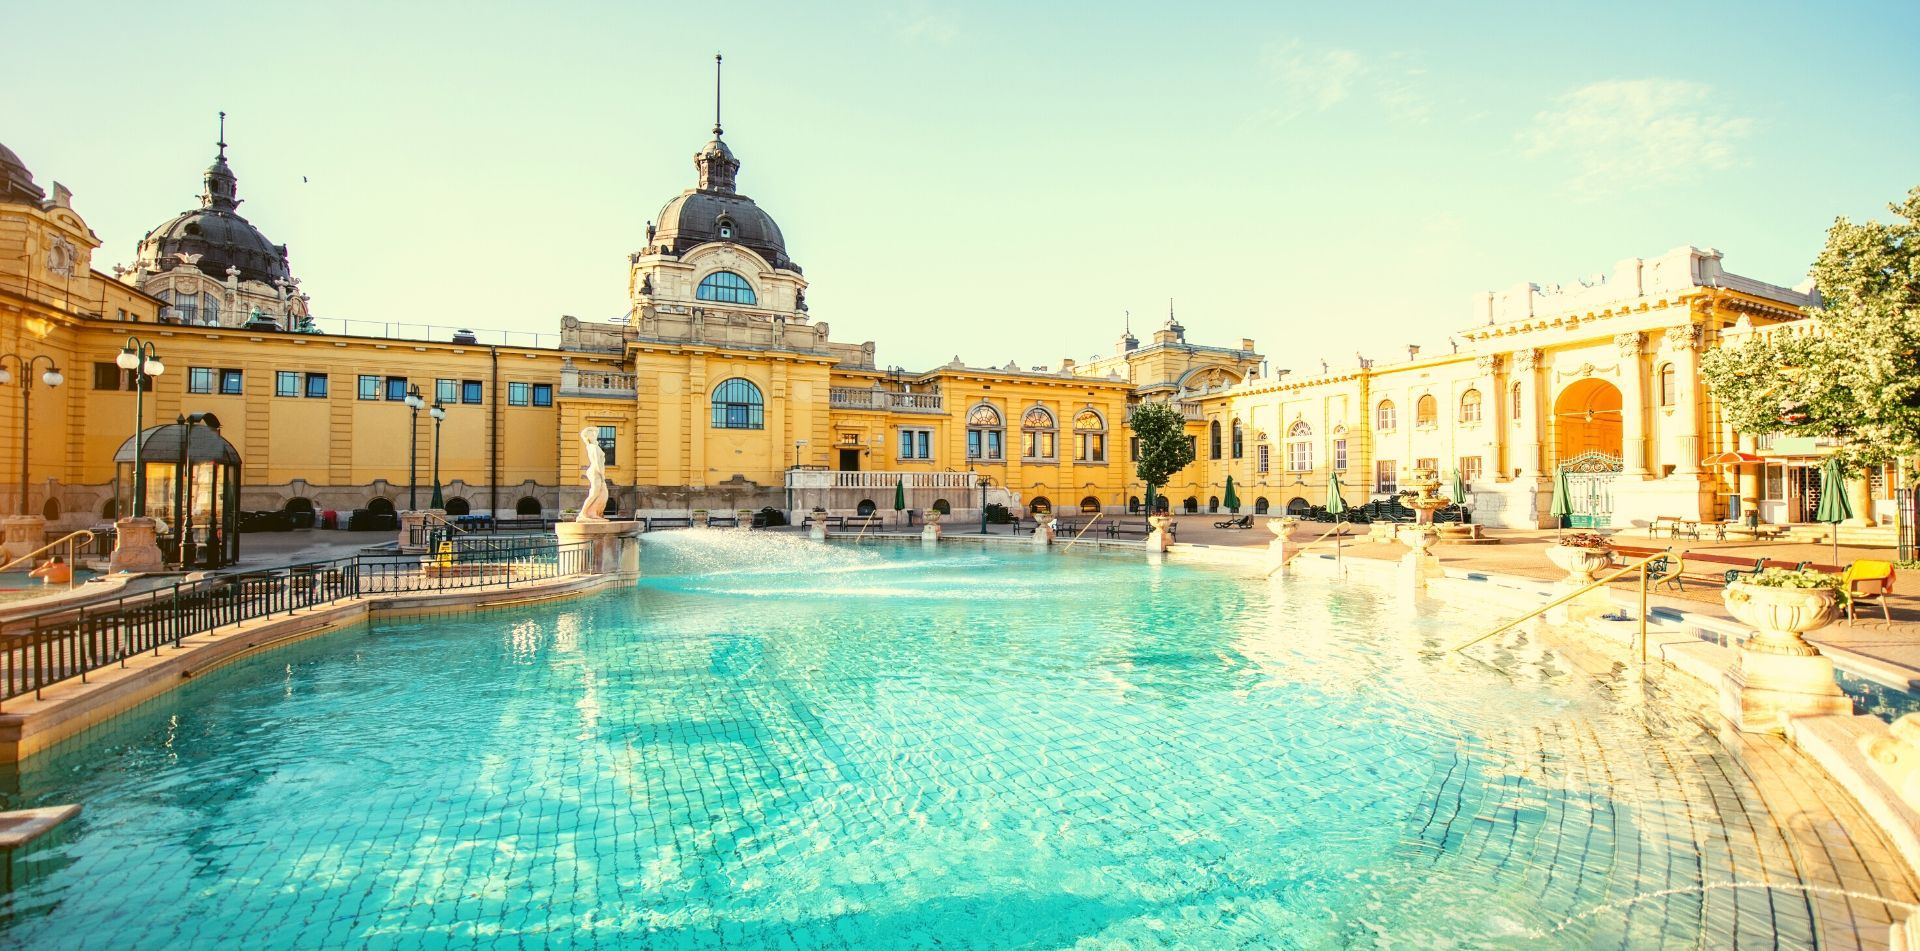 Europe Hungary Budapest Széchenyi Thermal Bath pools and spa - luxury vacation destinations